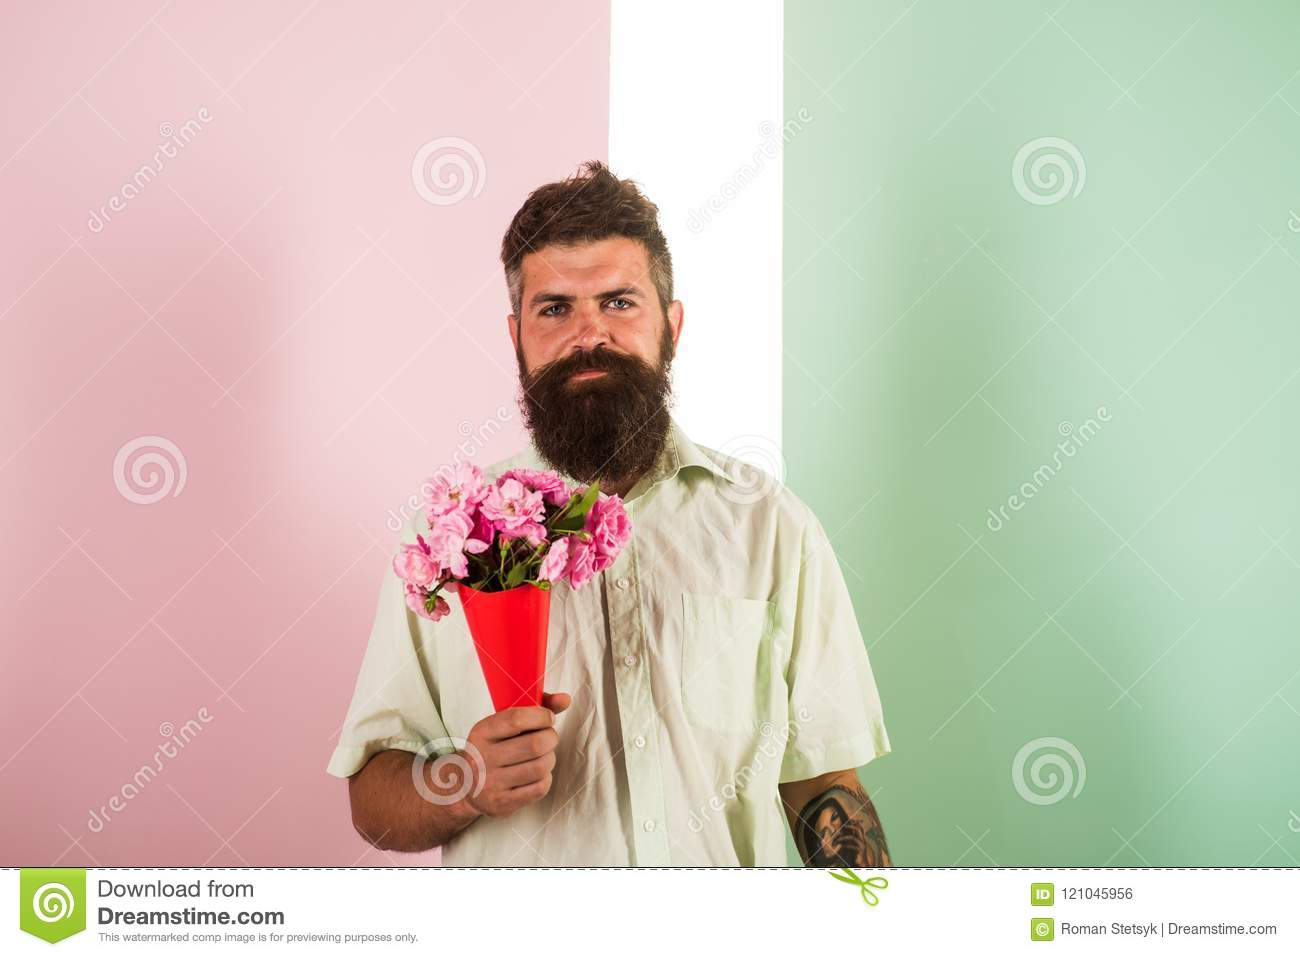 Dating a hipster guy with beard